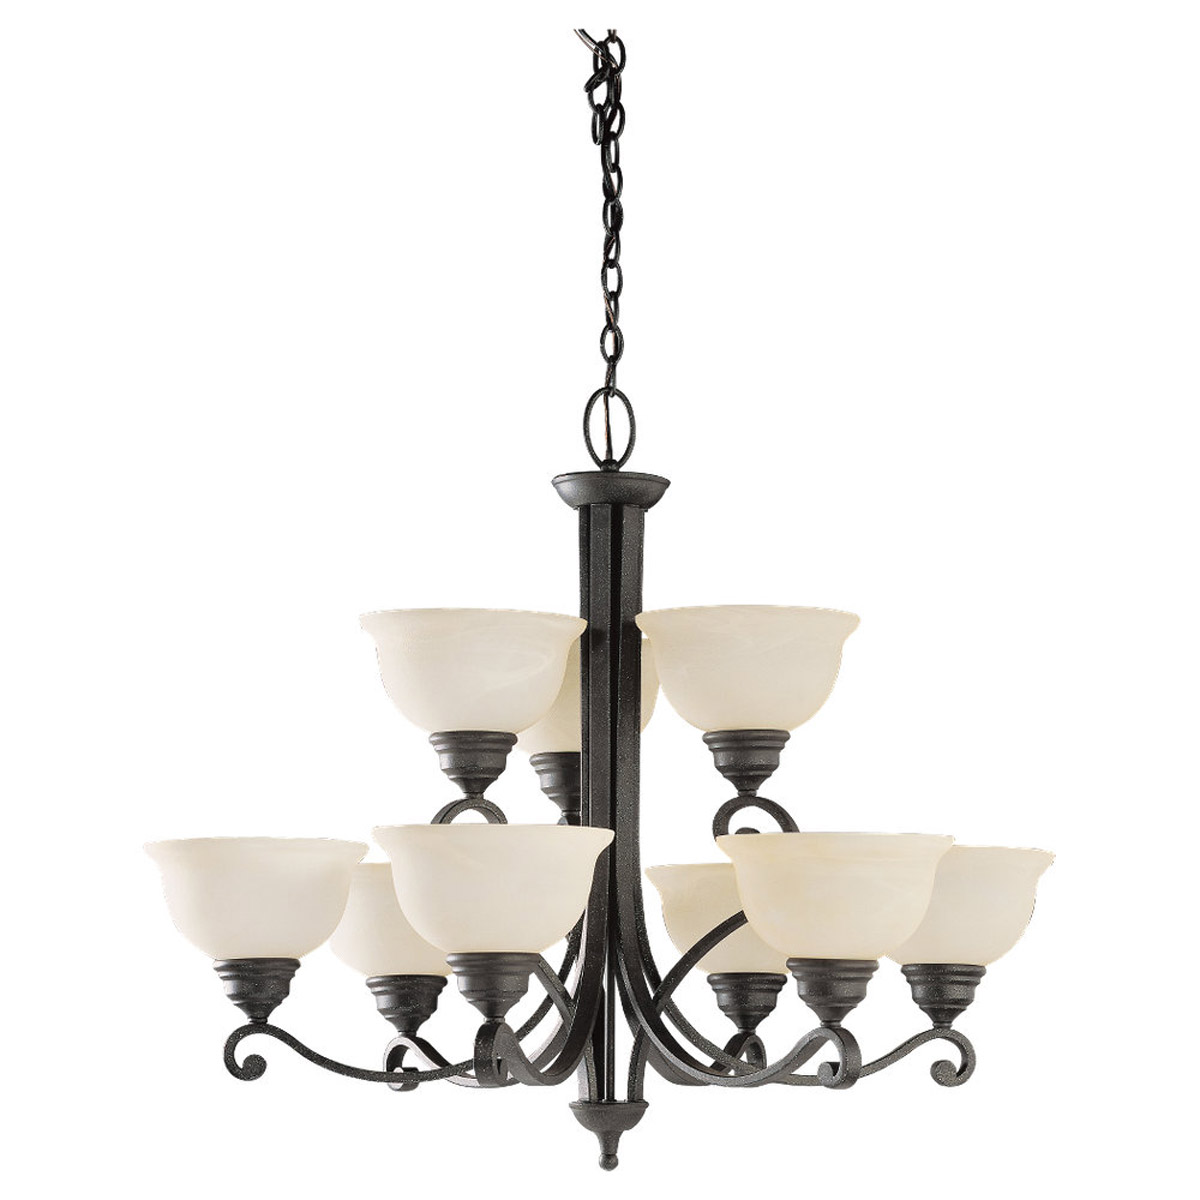 Sea Gull Lighting Serenity 9 Light Chandelier in Weathered Iron 39060BLE-07 photo